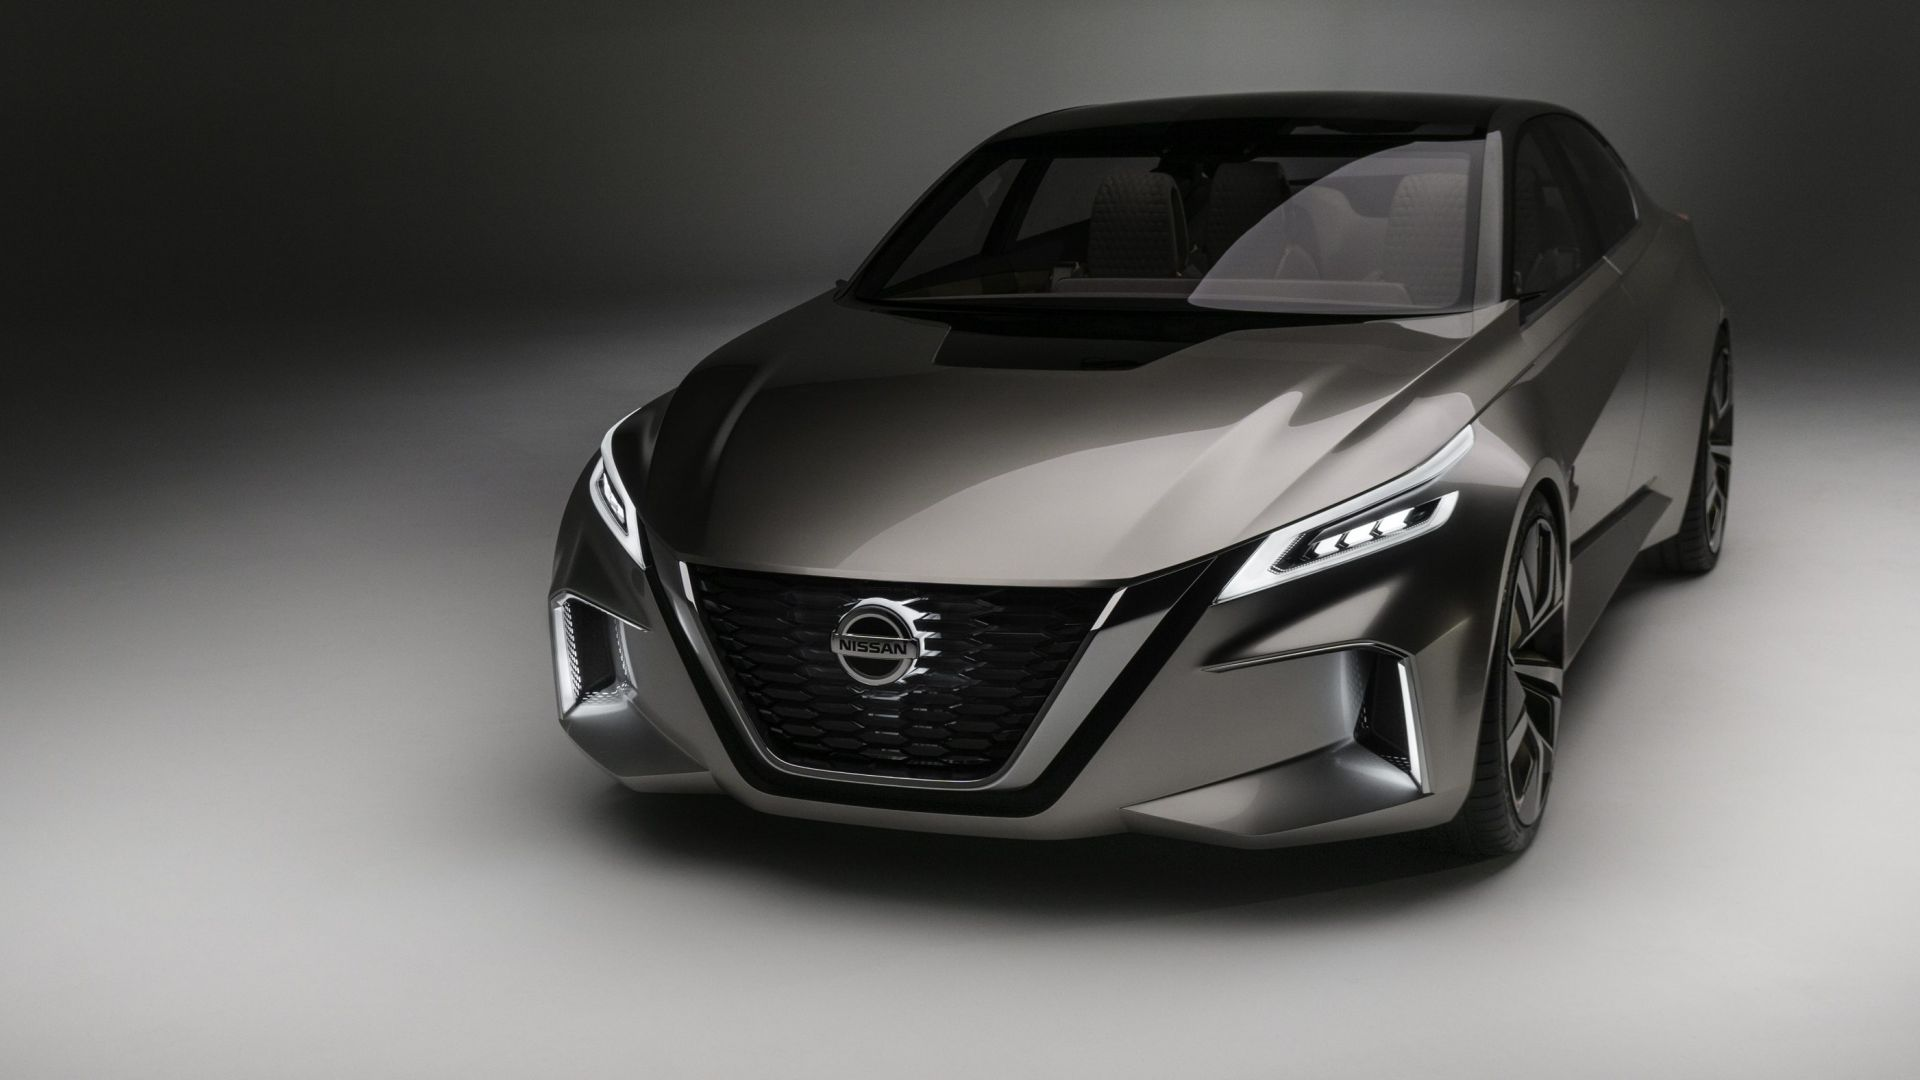 Nissan Vmotion 2.0, concept, front (horizontal)